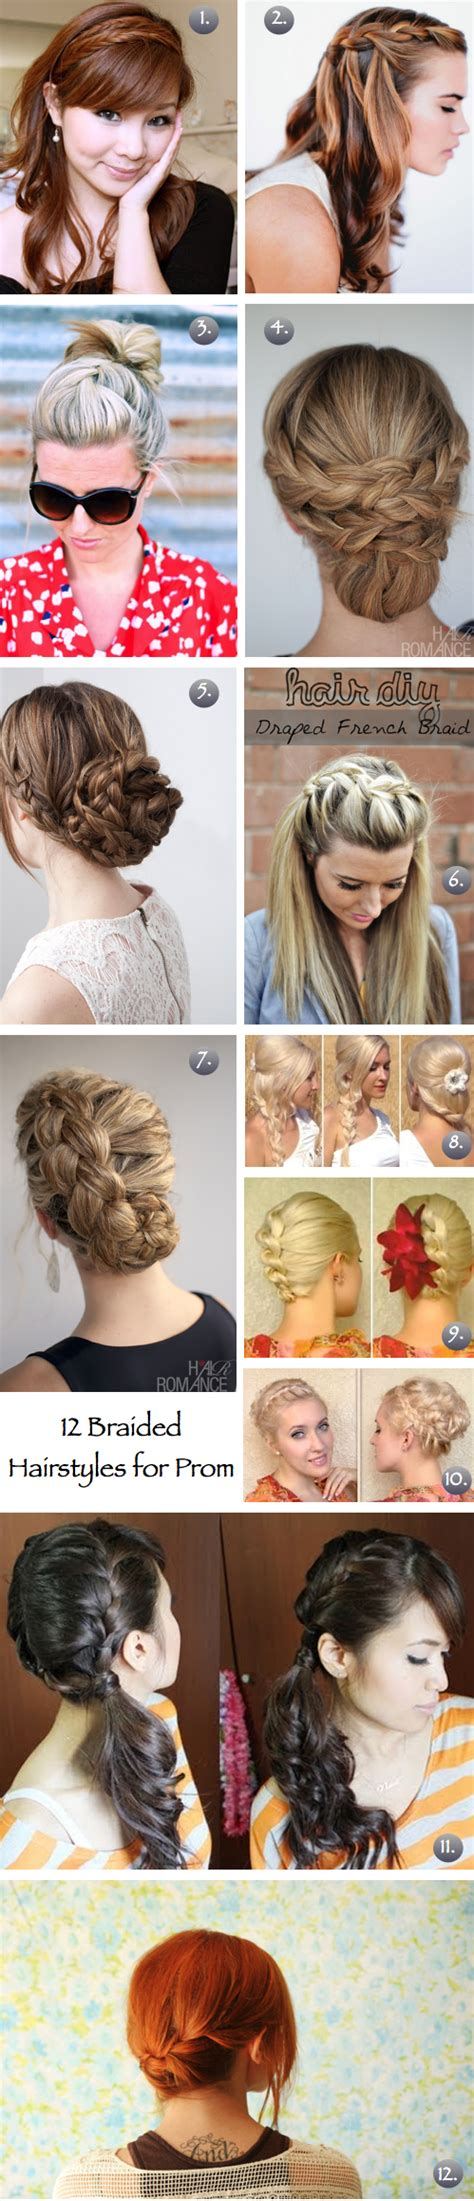 Diy Braided Hairstyles by 12 Diy Braided Hairstyles The Frugal